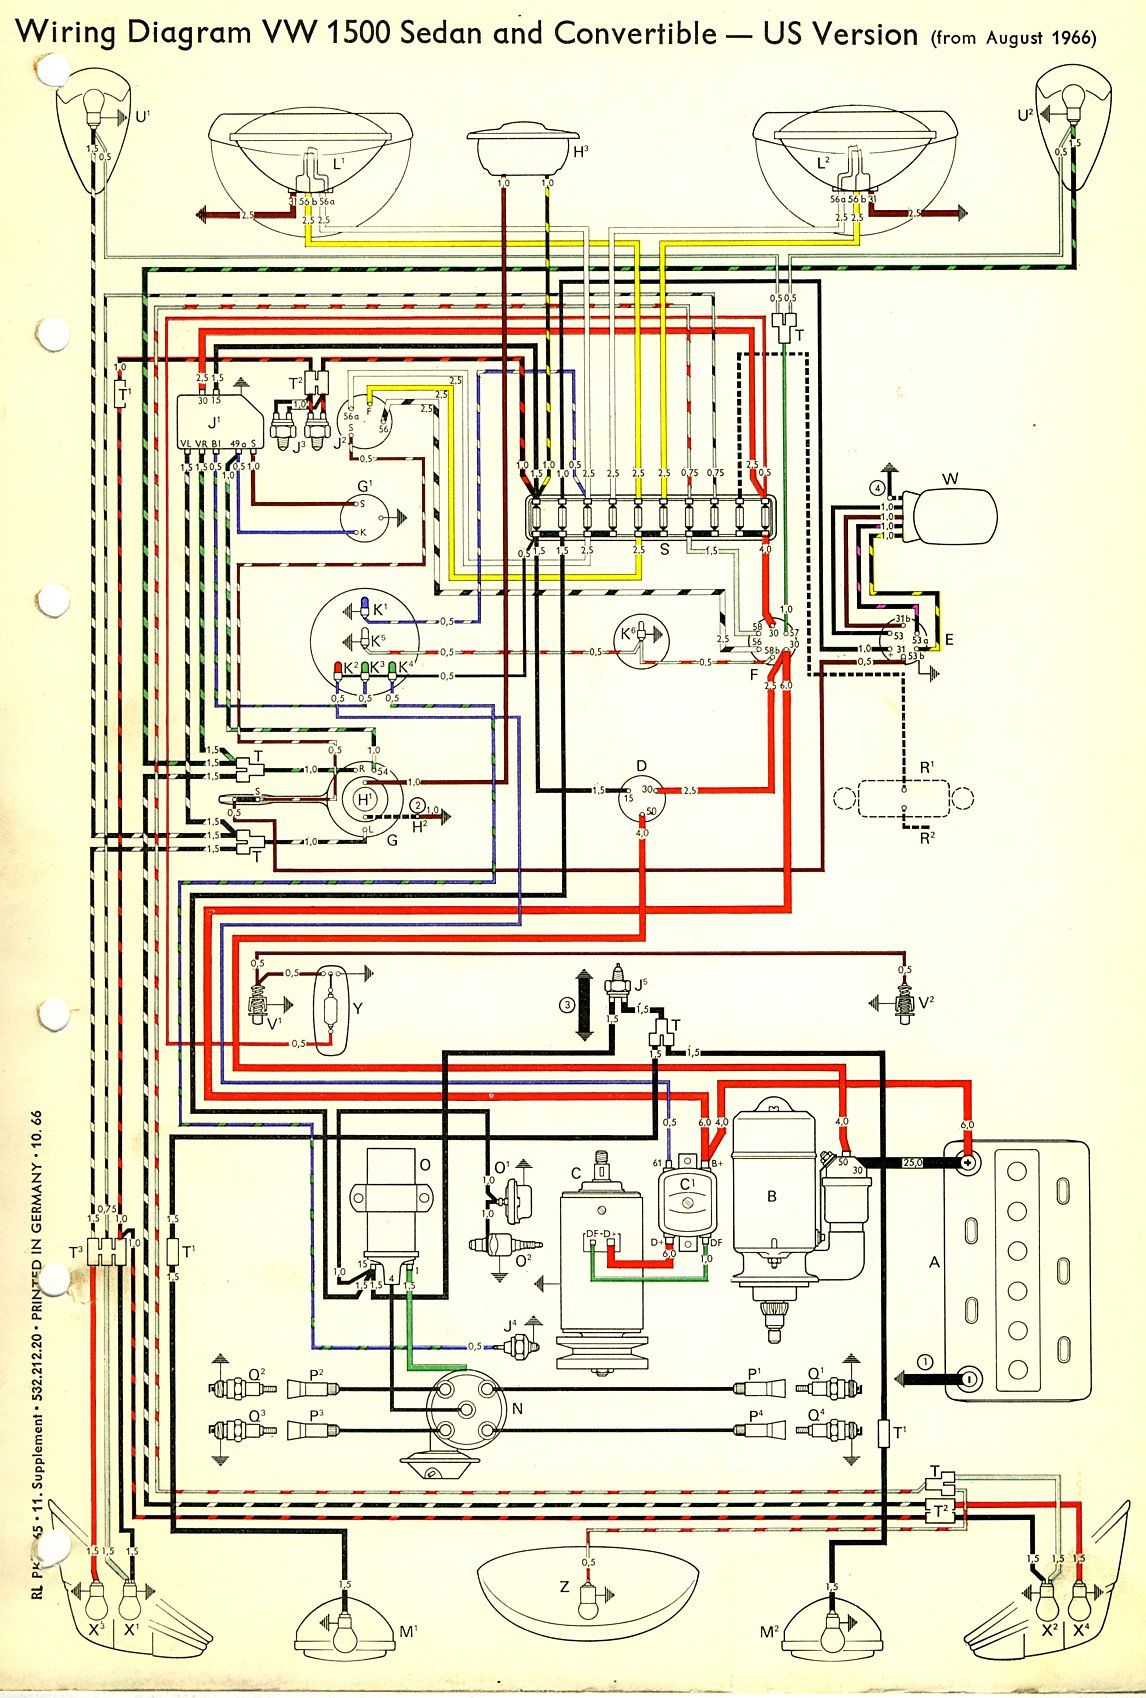 1967 beetle wiring diagram usa thegoldenbug com best 1967 vw rh pinterest com